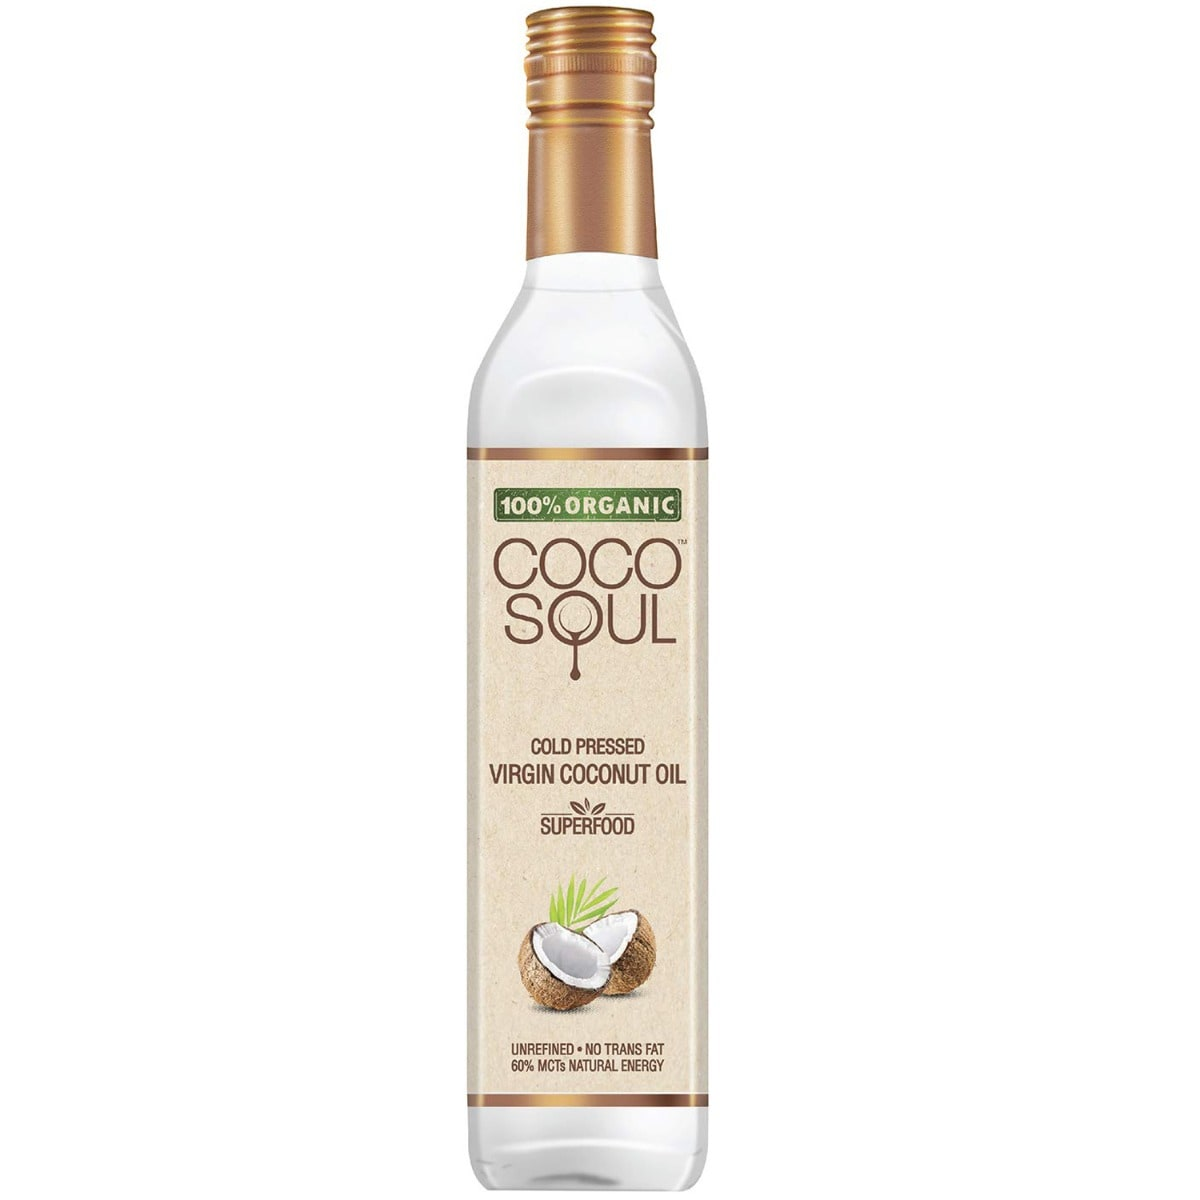 Coco Soul Cold Pressed Virgin Coconut Oil, 250 ml, Pack of 1